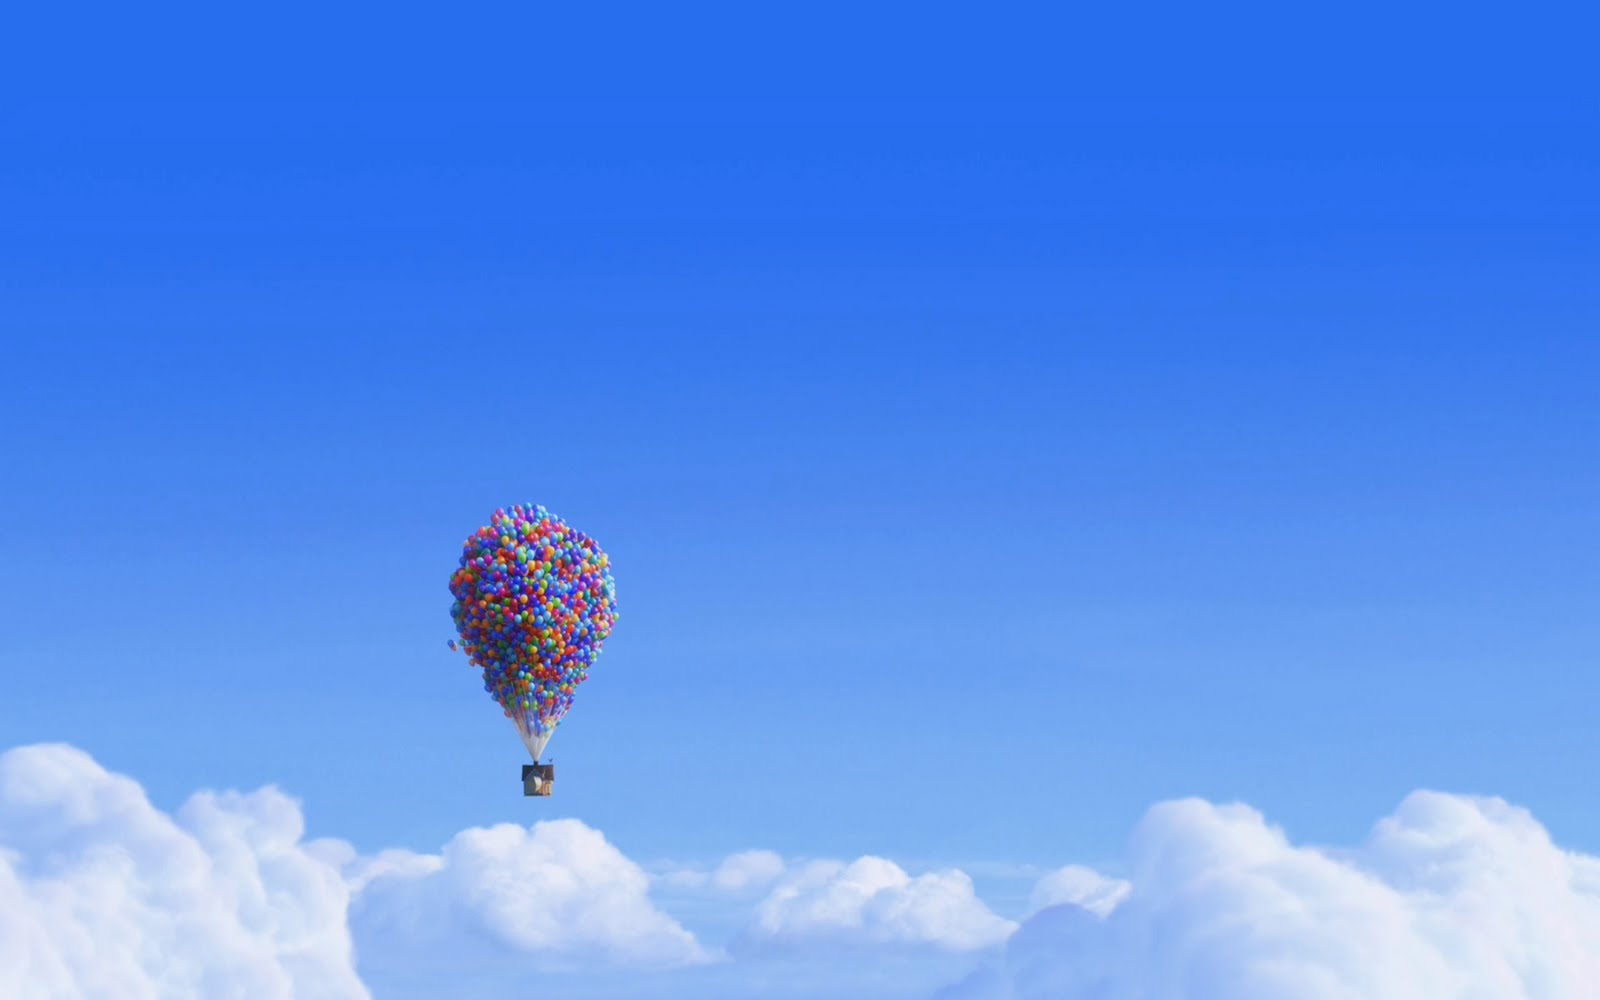 http://3.bp.blogspot.com/-uC4J-u1j7Vg/TmJru5rFzDI/AAAAAAAAC1s/pyBhH8C2UPk/s1600/Pixar_Up_Movie_HD_Wallpaper_www.Vvallpaper.Net_.jpg